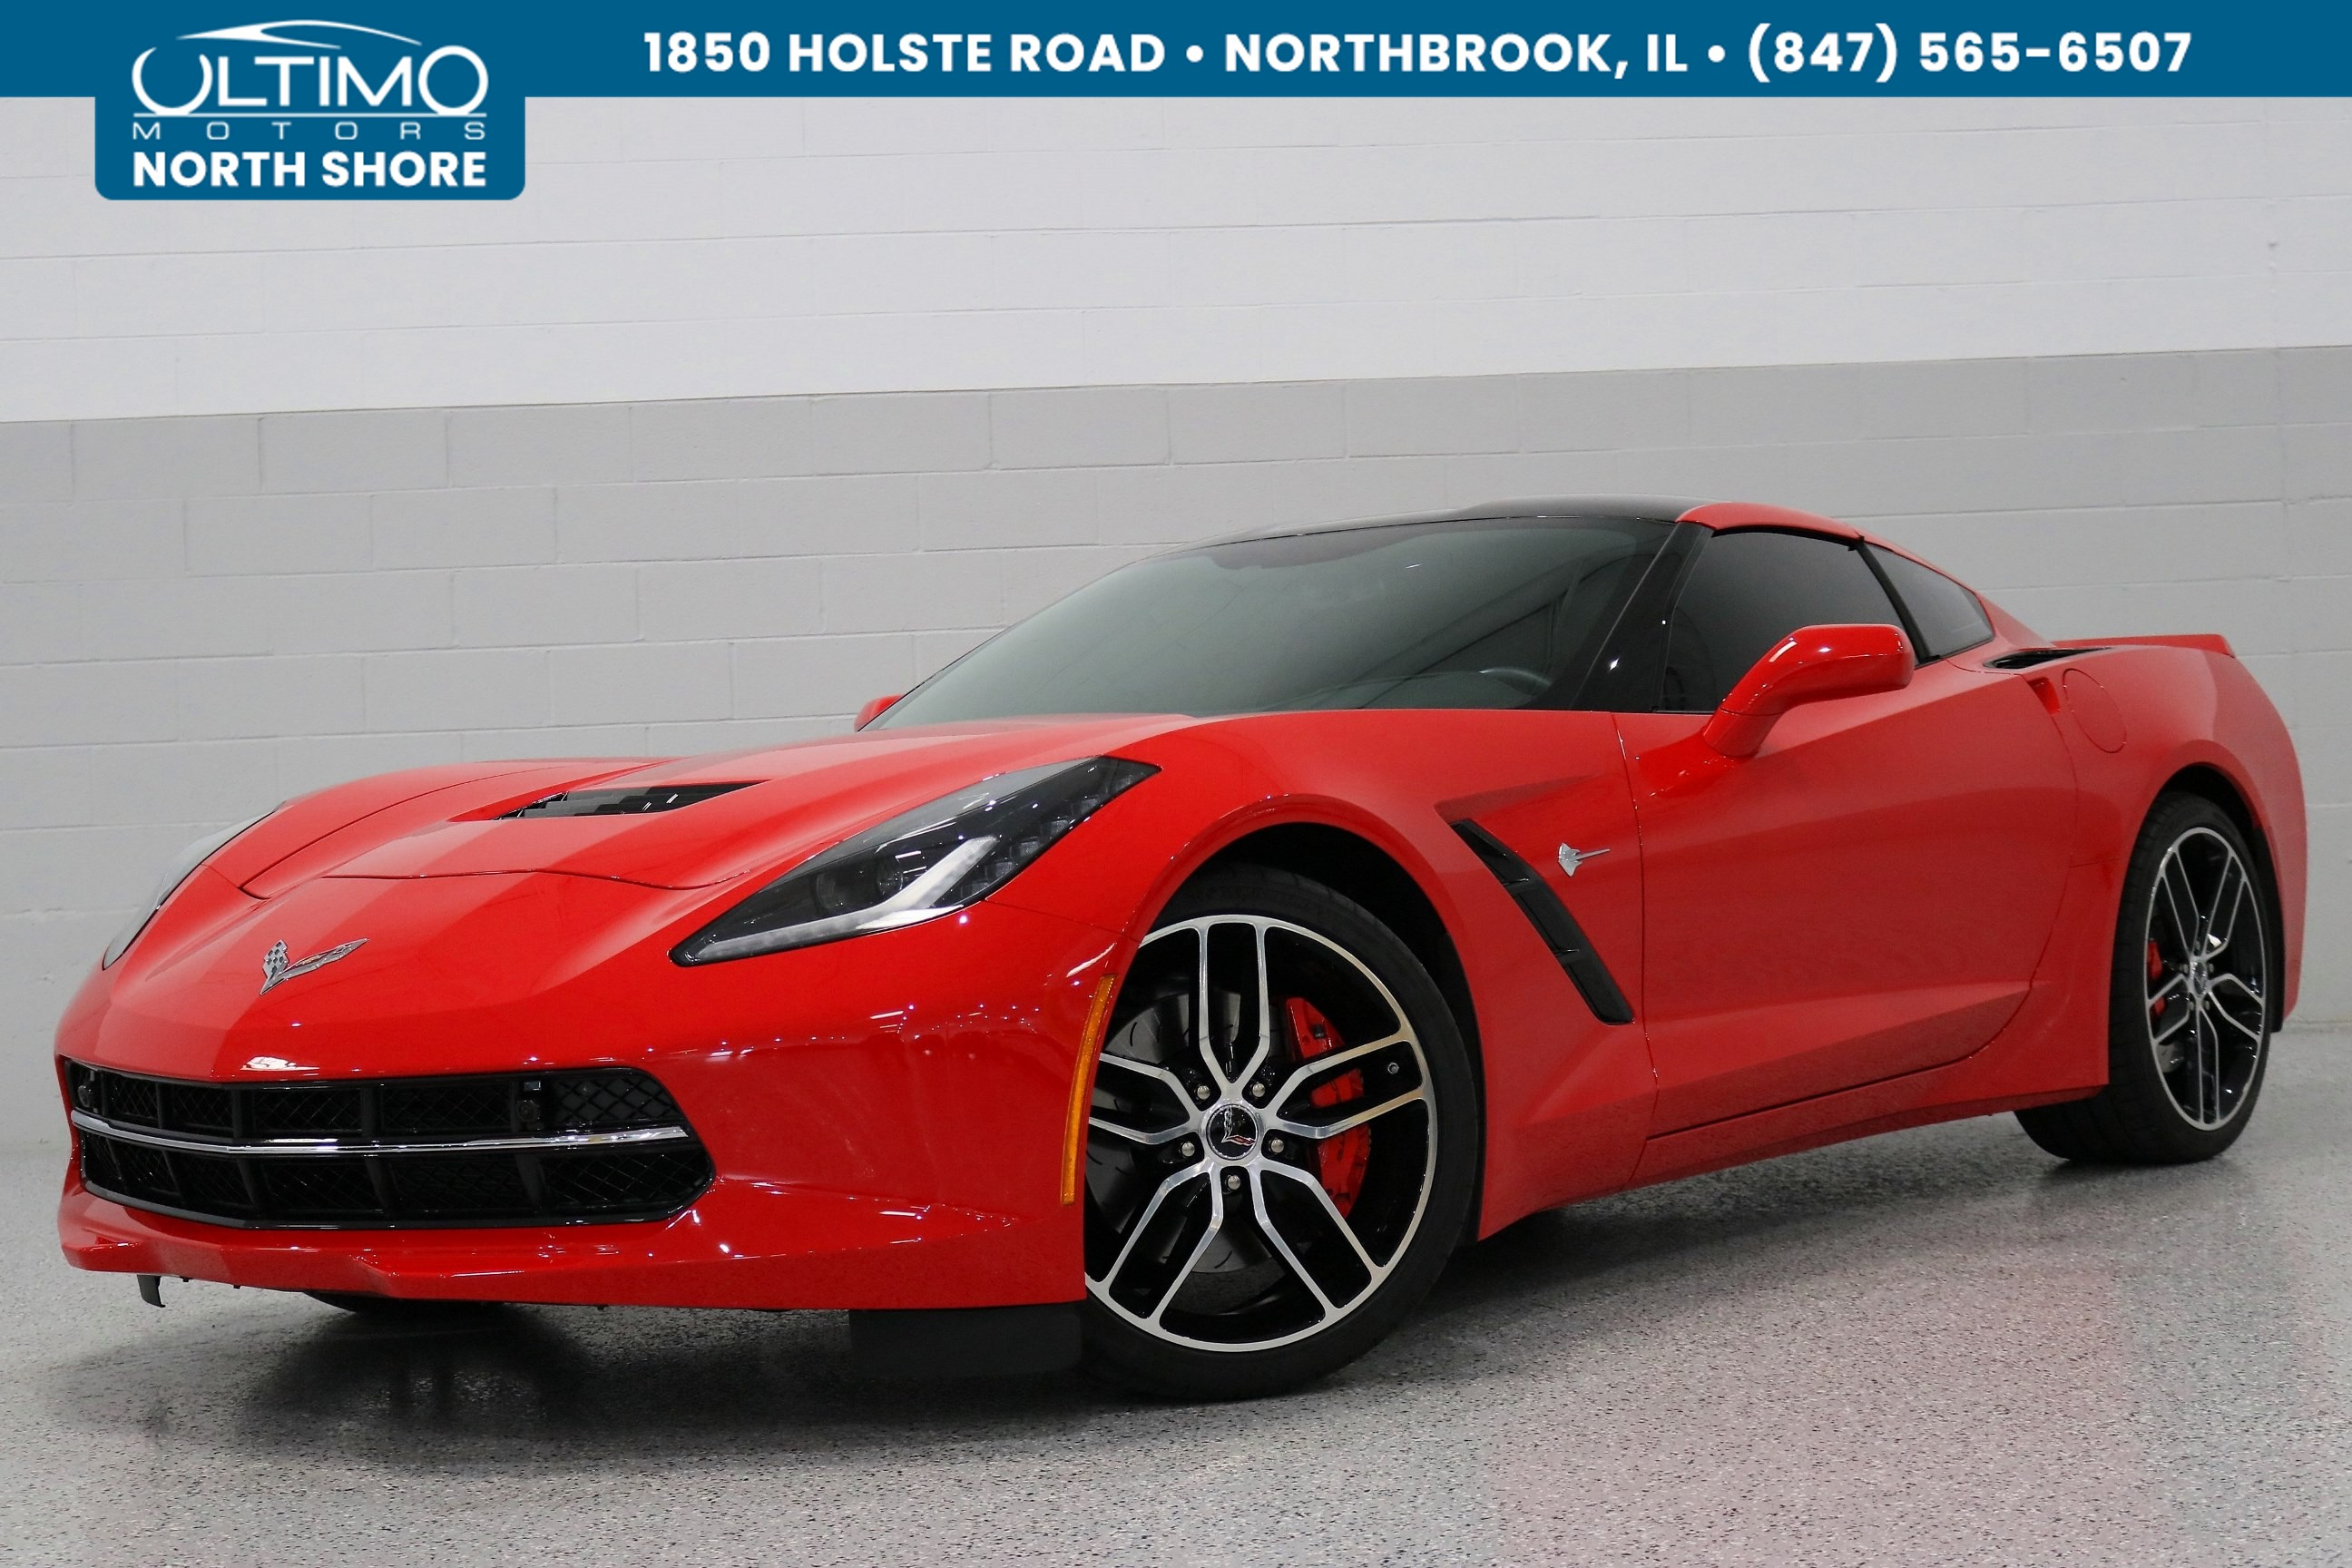 Pre-Owned 2016 Chevrolet Corvette Z51 2LT, MSRP $71,760